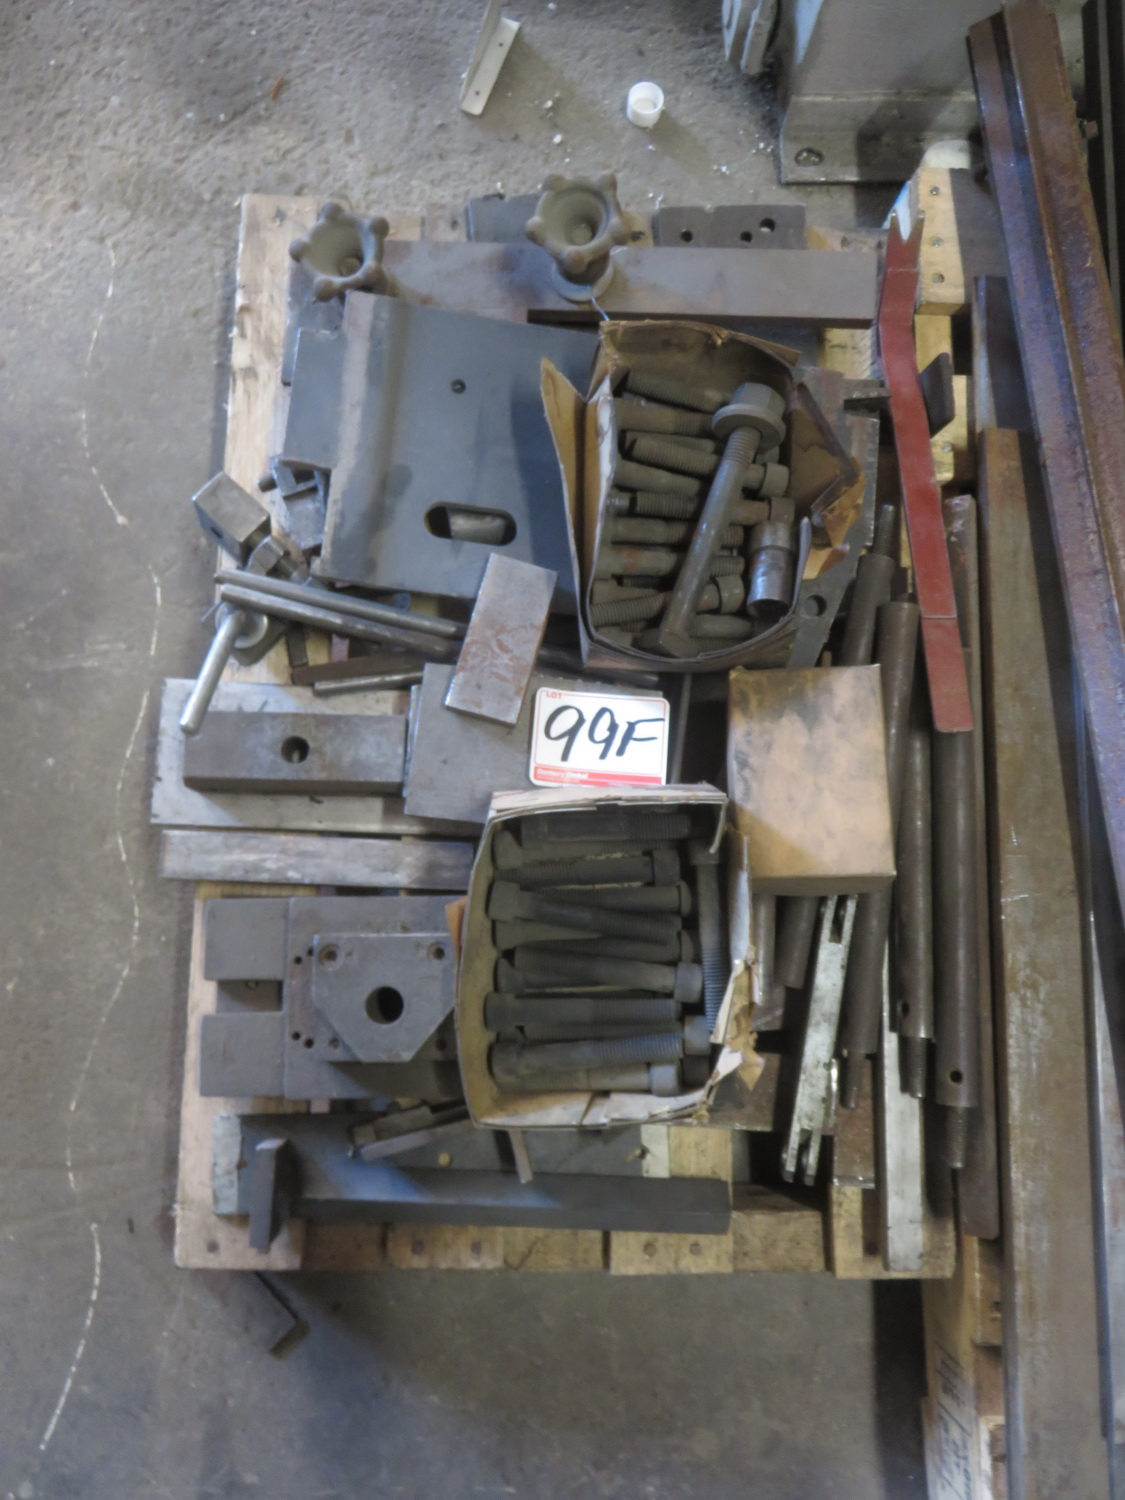 Lot 99F - LOT - BOLTS, HOLD DOWNS, ANGLE OFFCUTS ETC